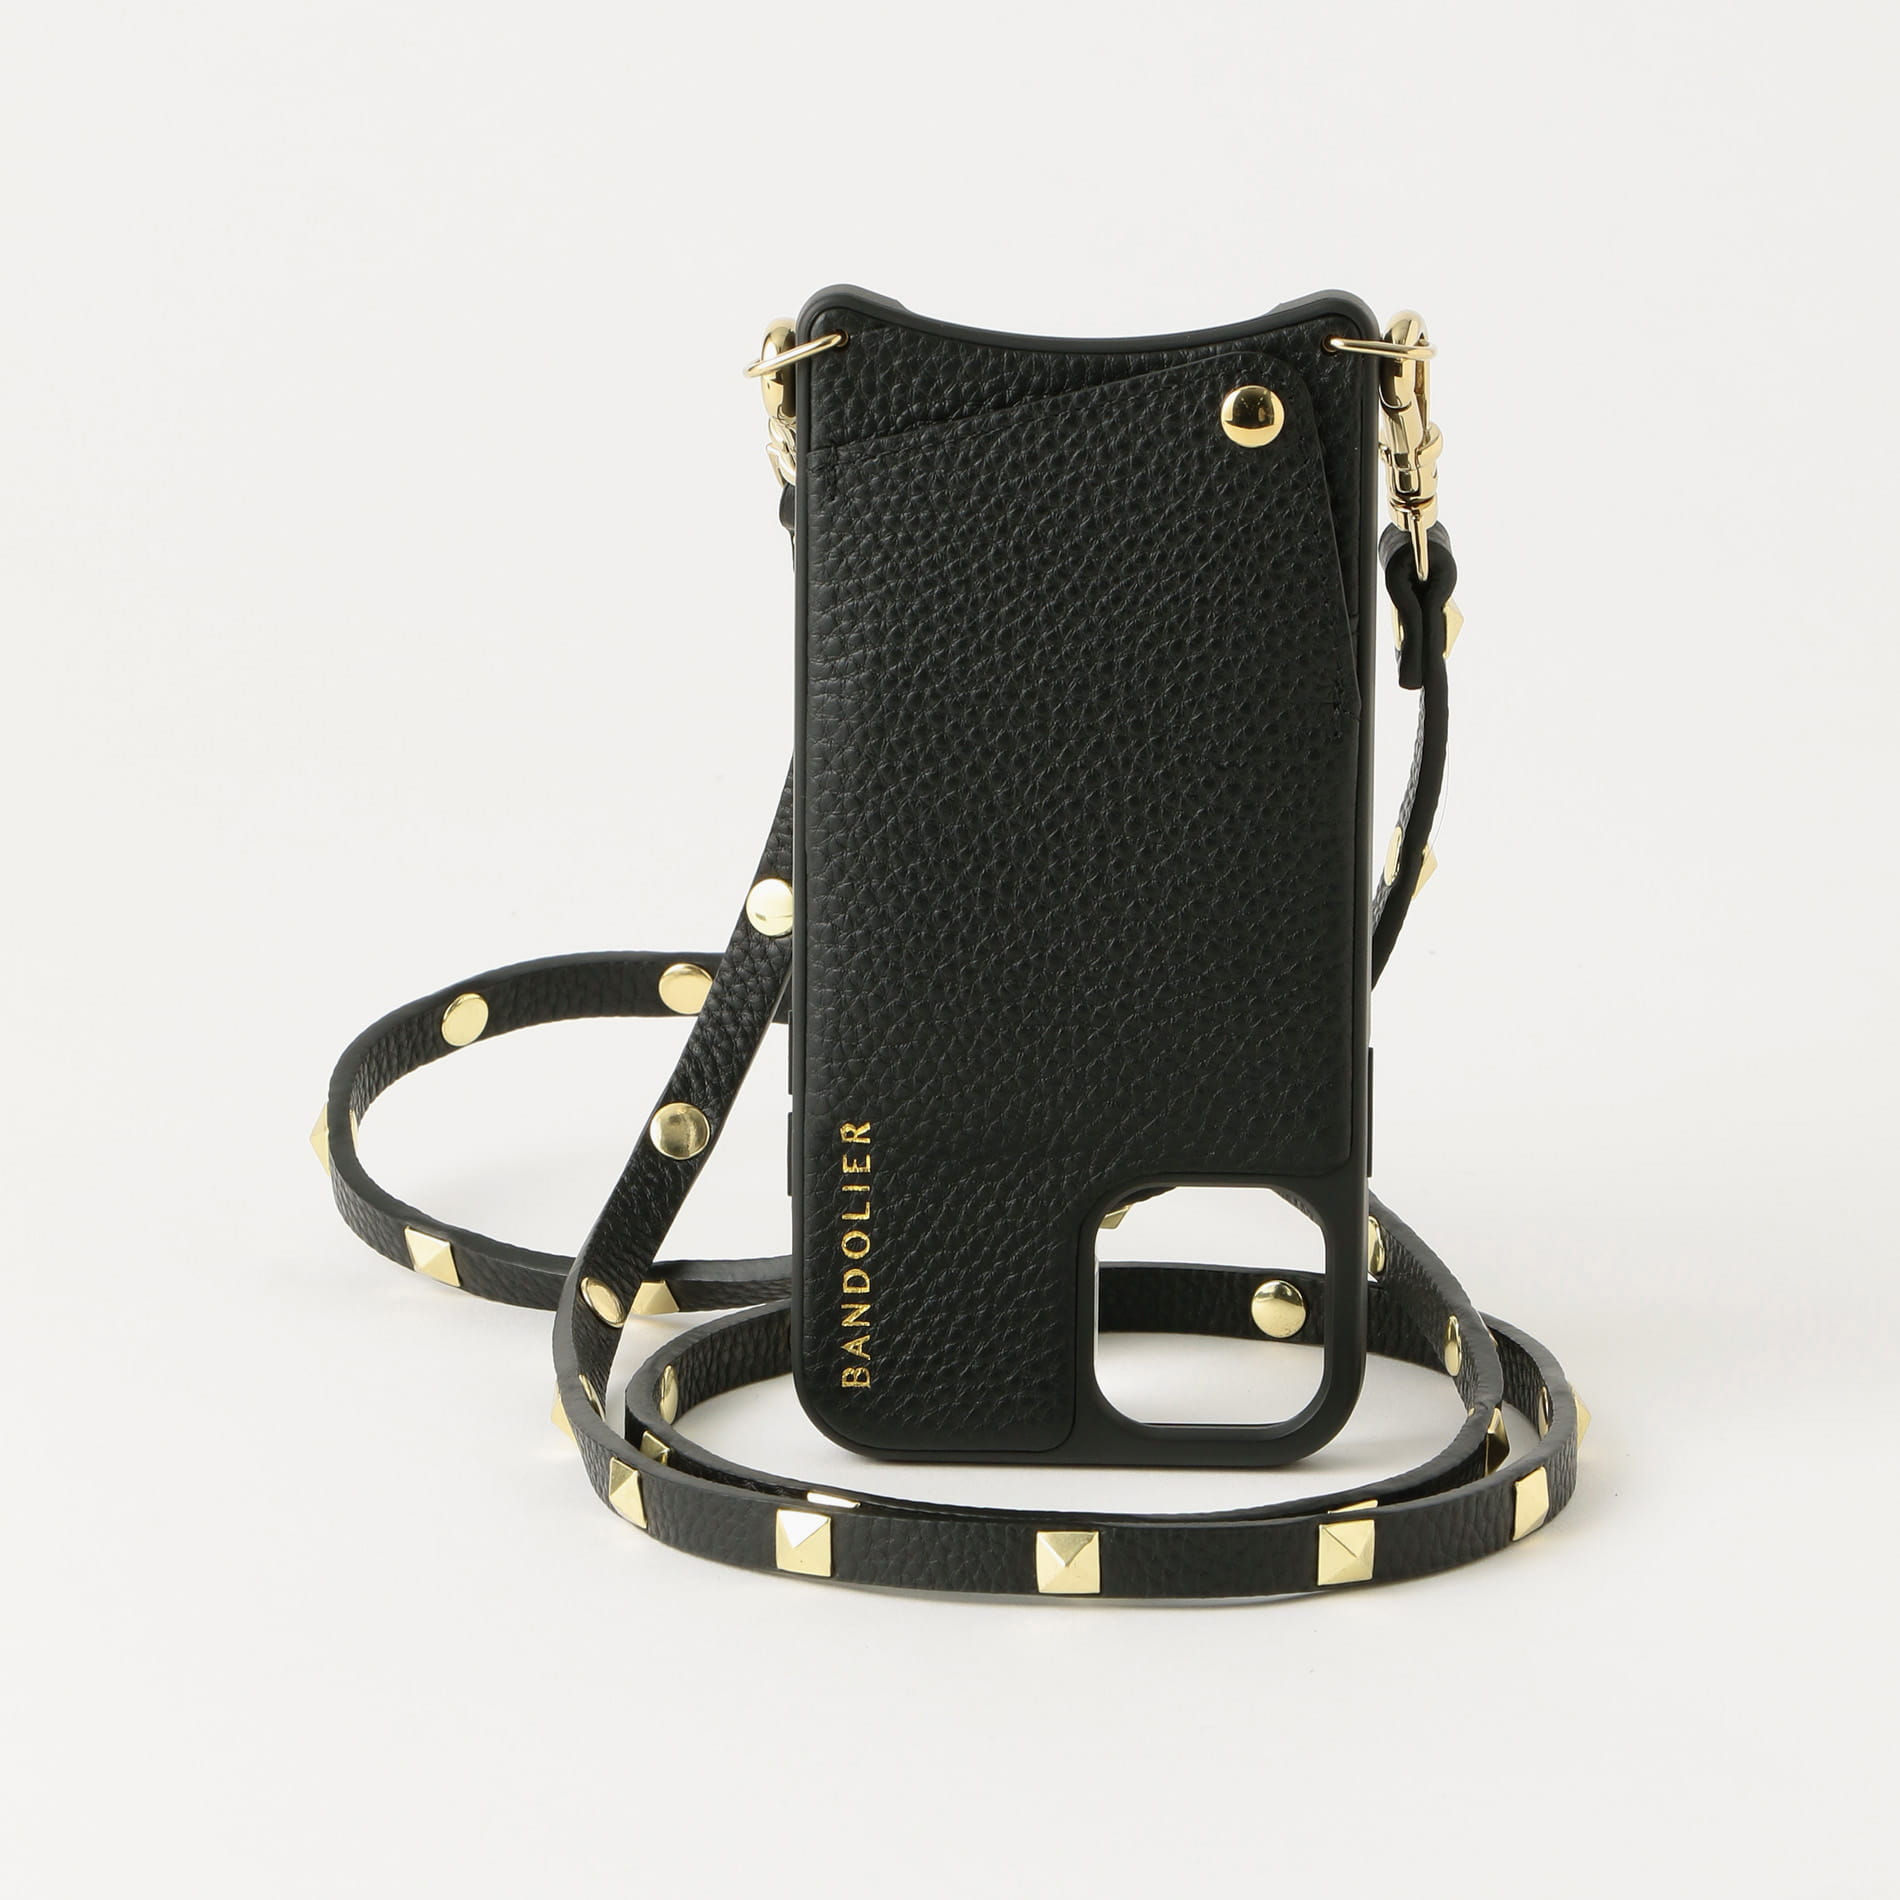 【BANDOLIER】SARAH GOLD iPhone 11 Pro bdl05-2014-11p